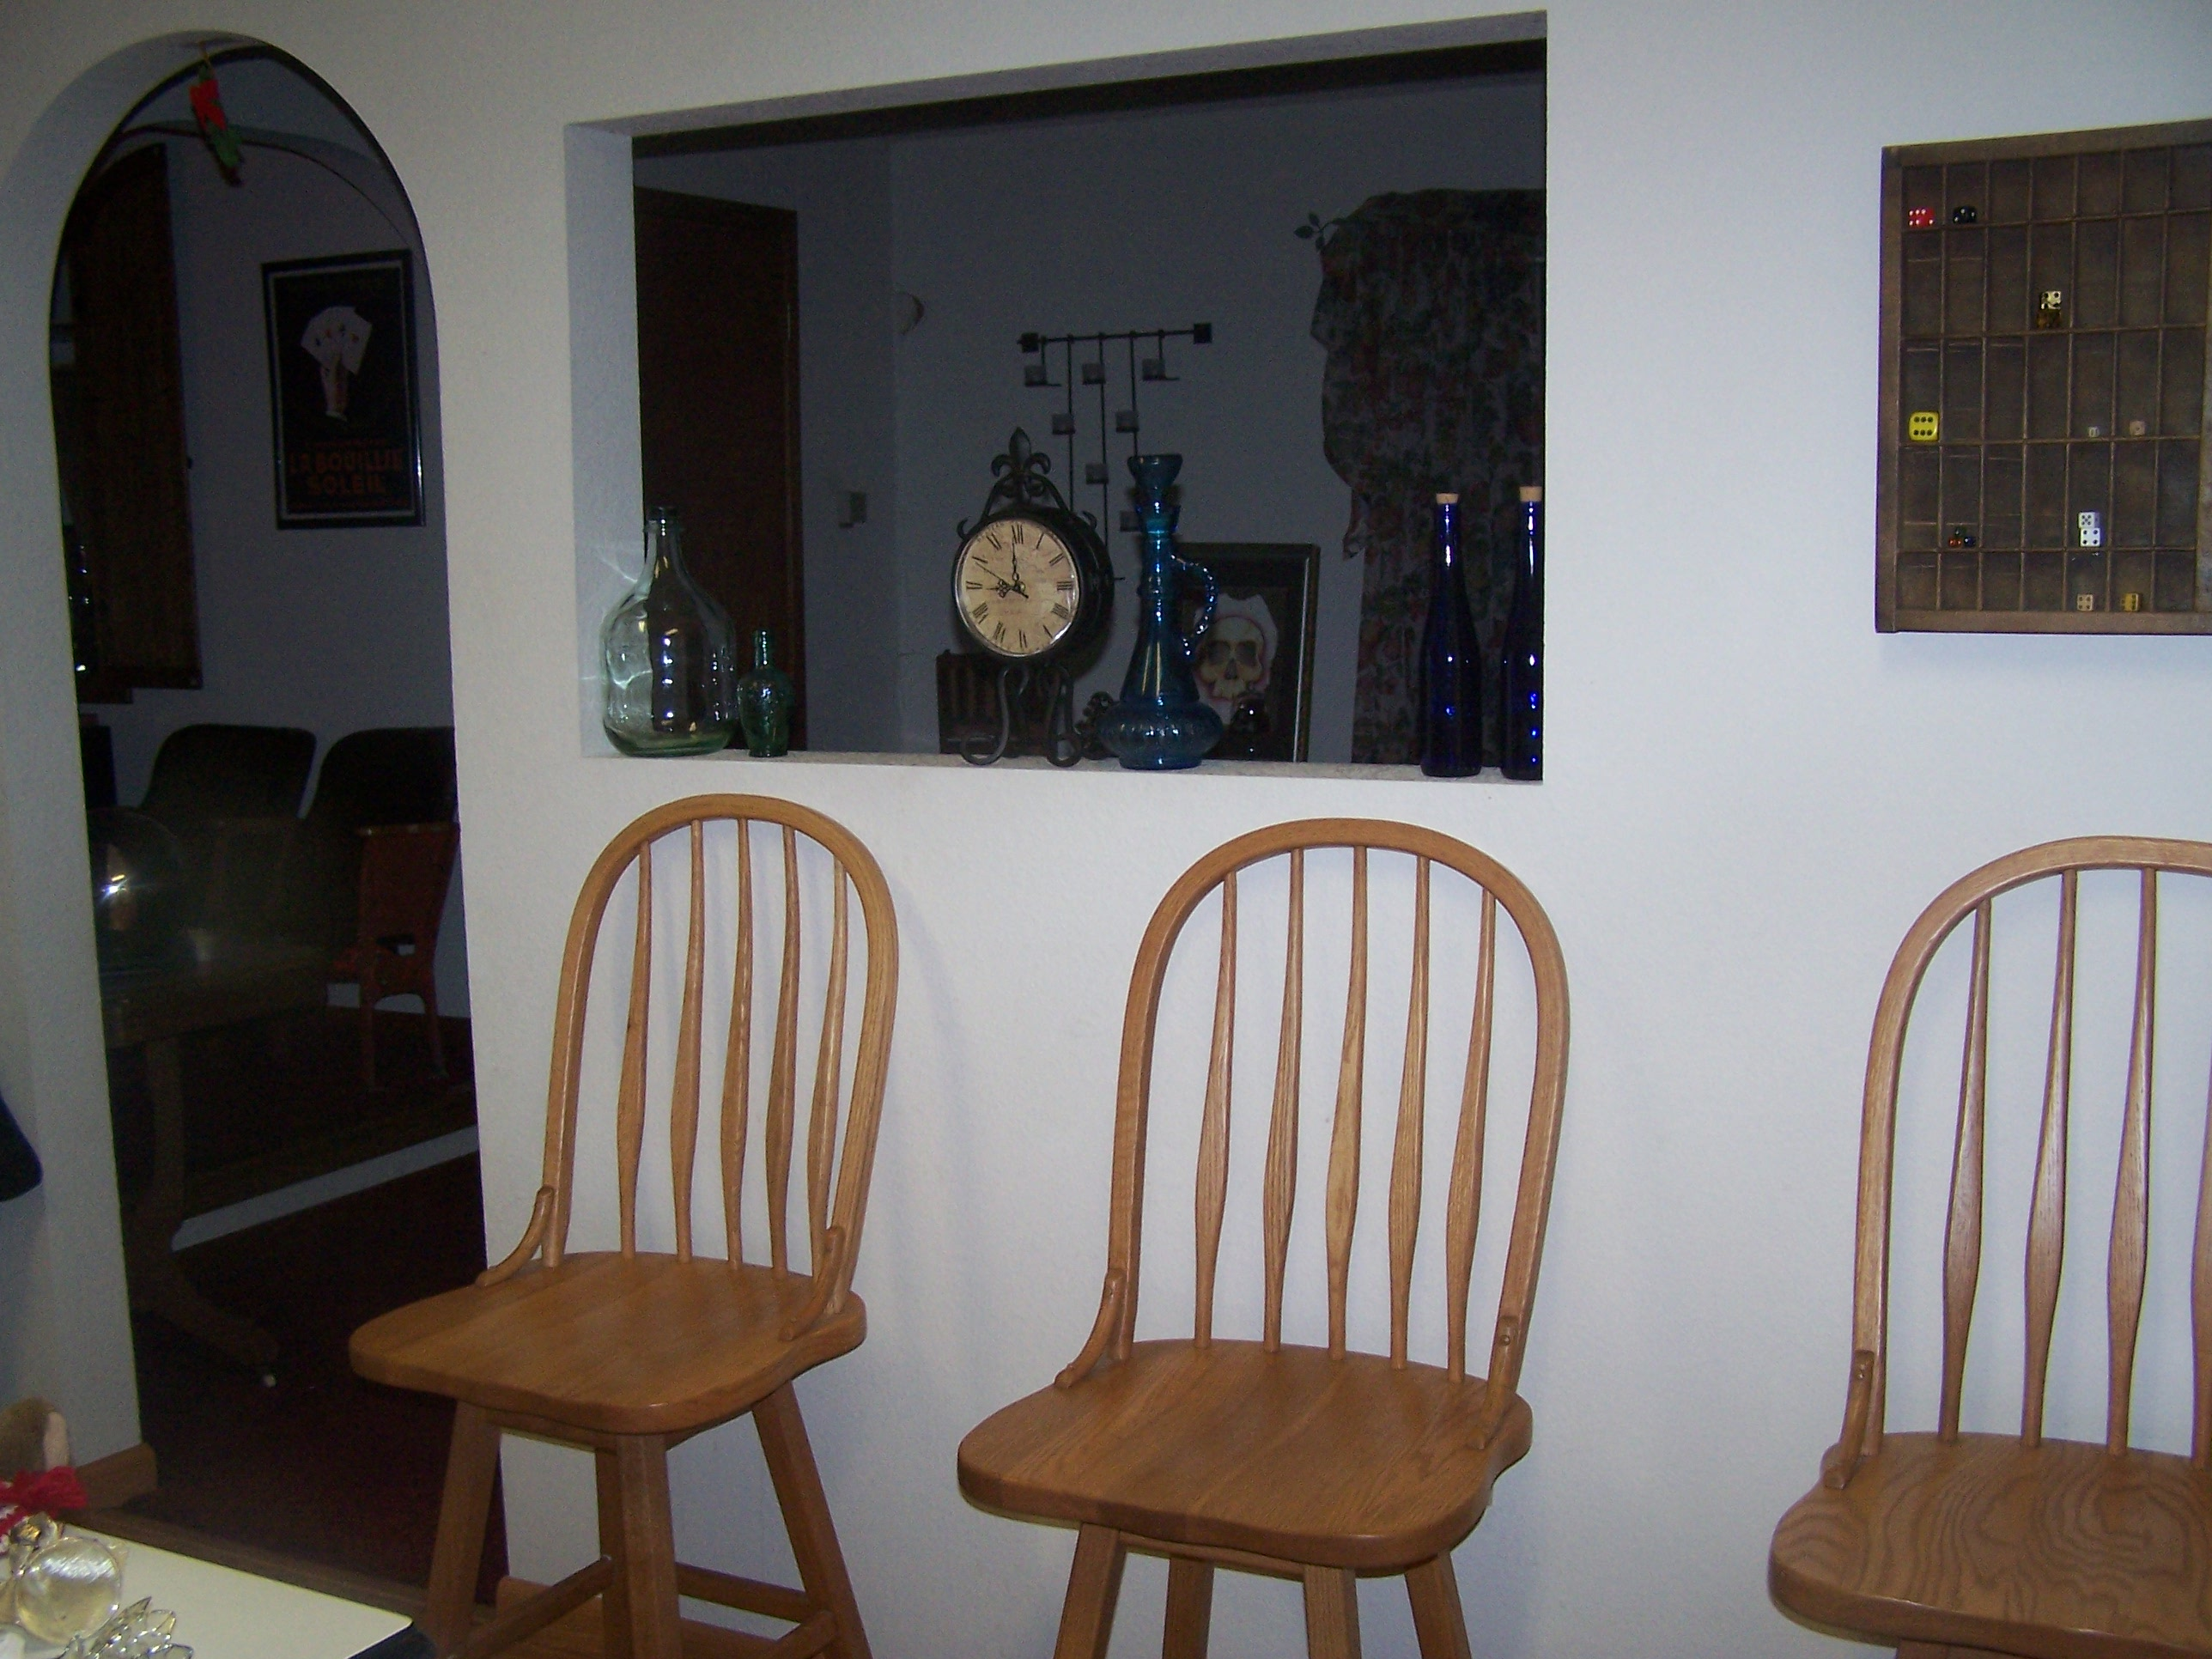 The little window to the dining room. Enless possibilities. The clock happens to have faces on both sides!